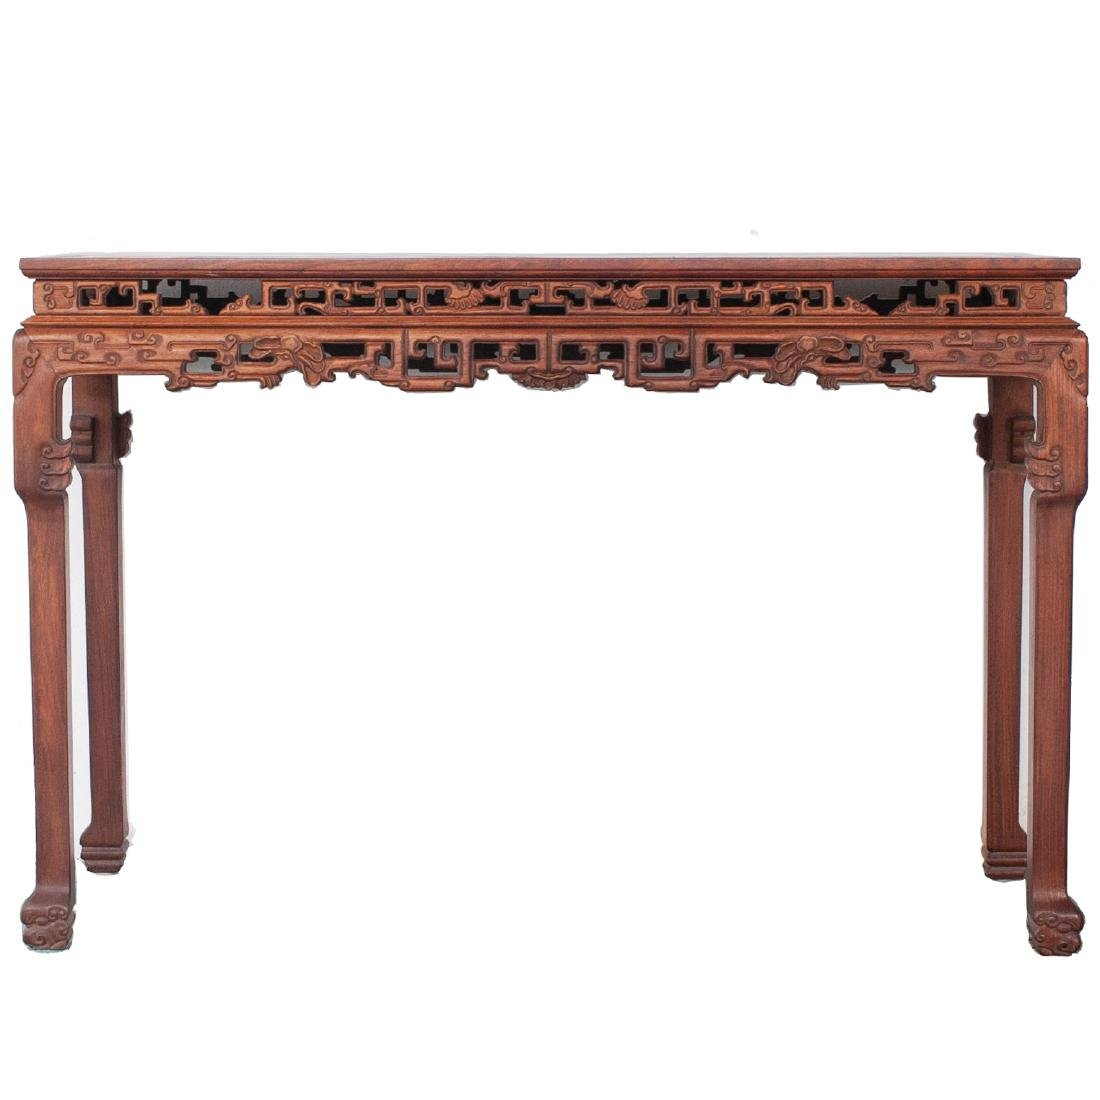 Large Chinese Wooden Altar Table